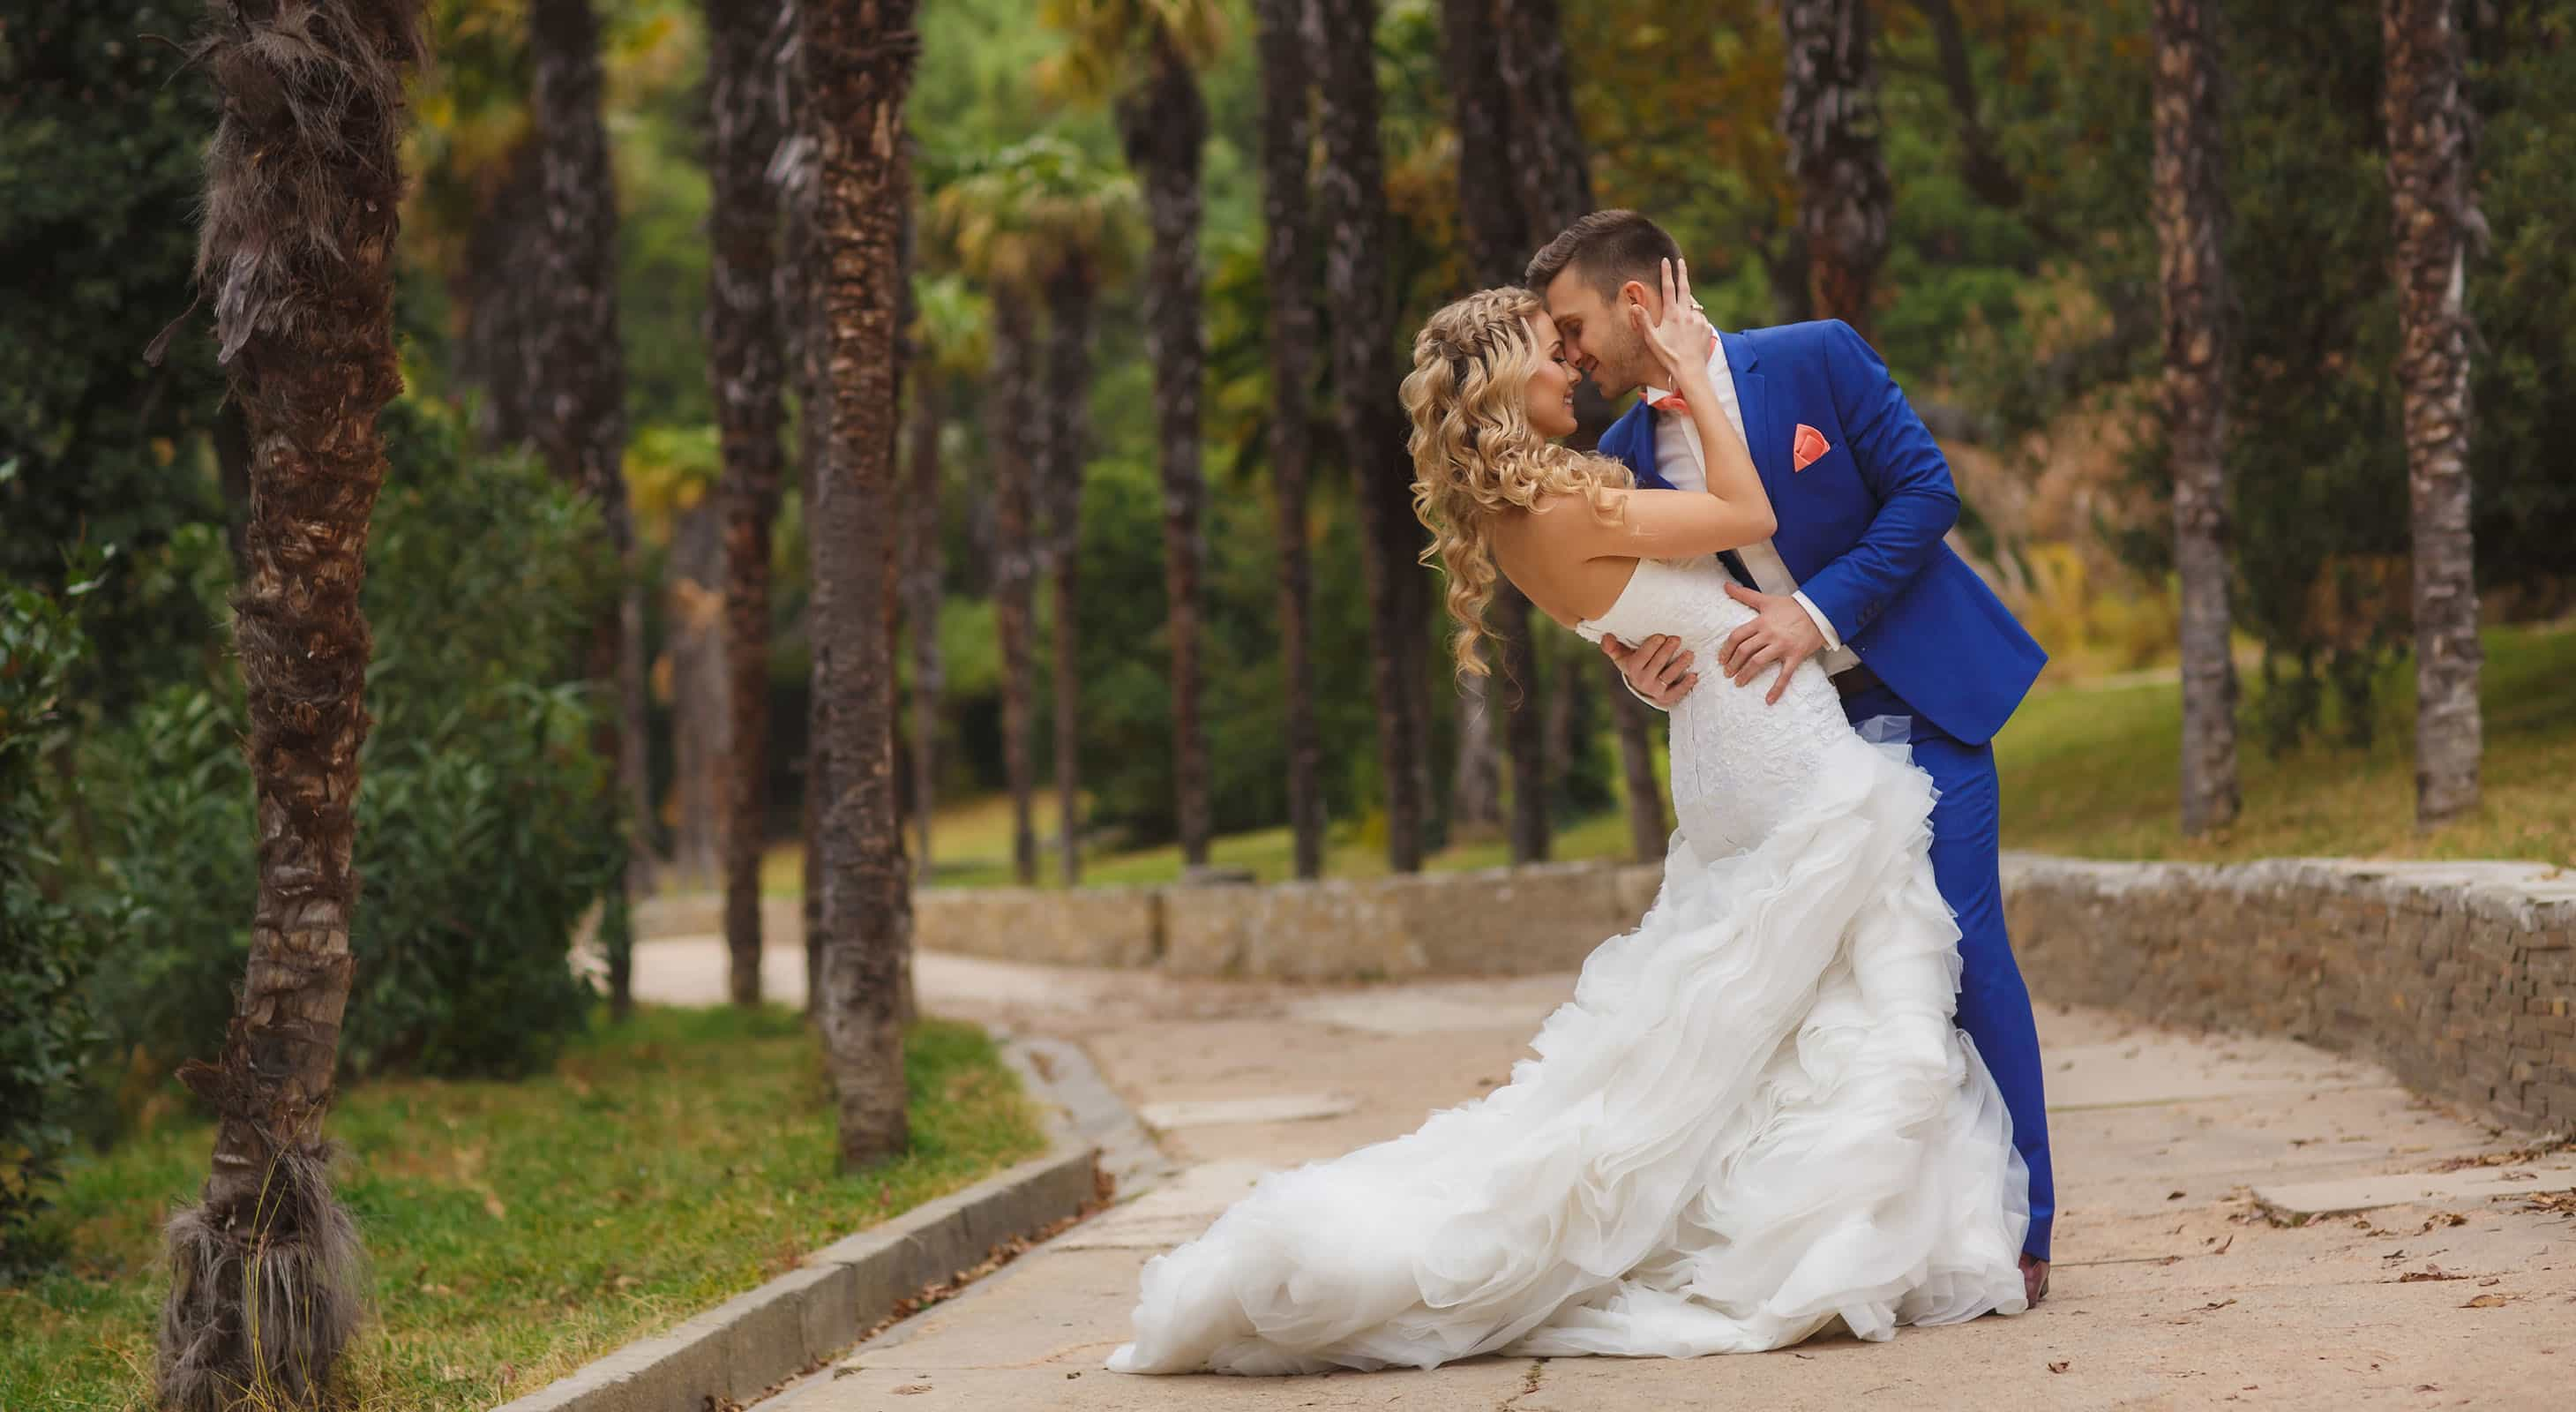 How to market a wedding business - lovely couple